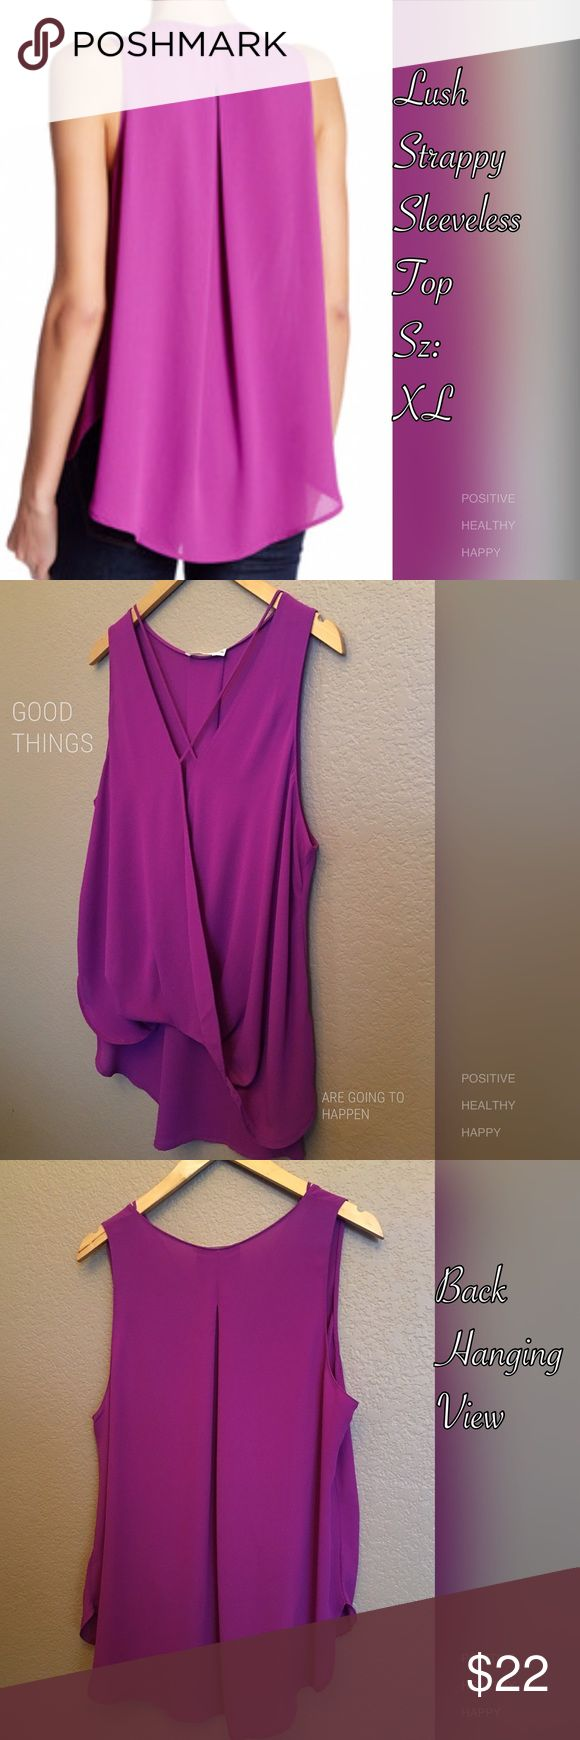 NWOT Sleeveless Hi-Lo Top 40% off closet sale Purple sleeveless surplus neck with strappy detail. Classy surplus styling  with an elegant draped front and on-trend hi-lo hem. Fold over front hem construction. Pretty back side with inverted pleat detail.  100% polyester. Bright fun summer color.  40% off closet sale! Item is New without tags. Lush Tops